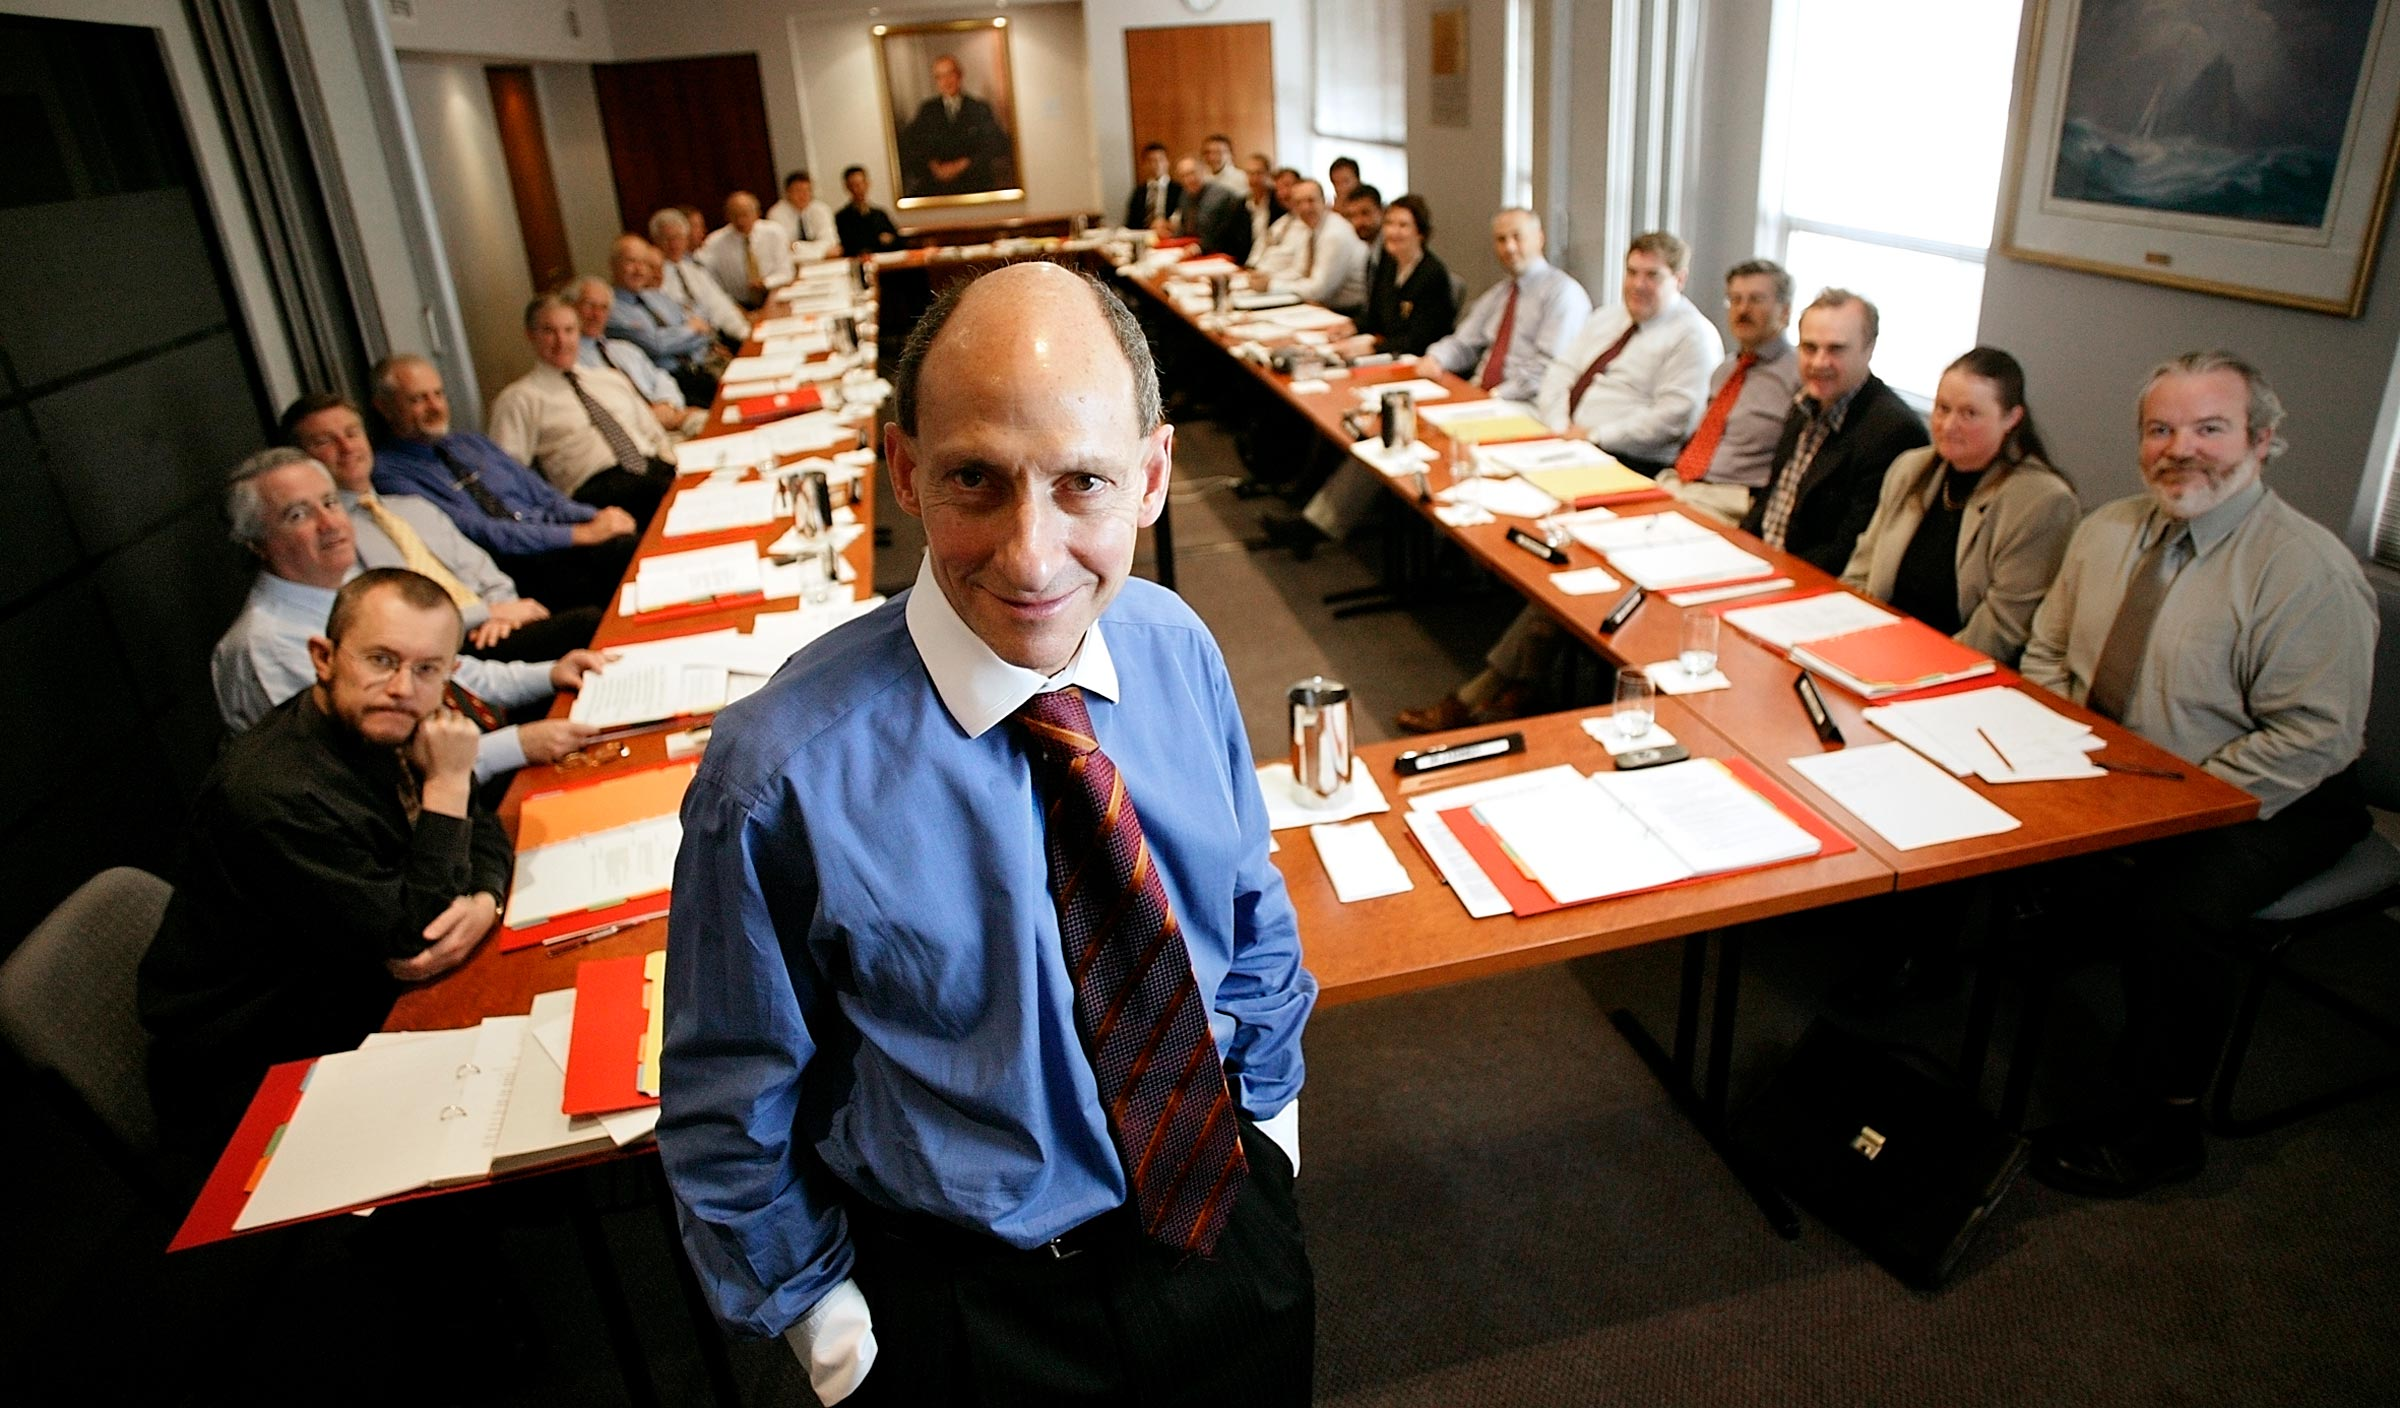 large group of people sitting around a boardroom table with boss in foreground